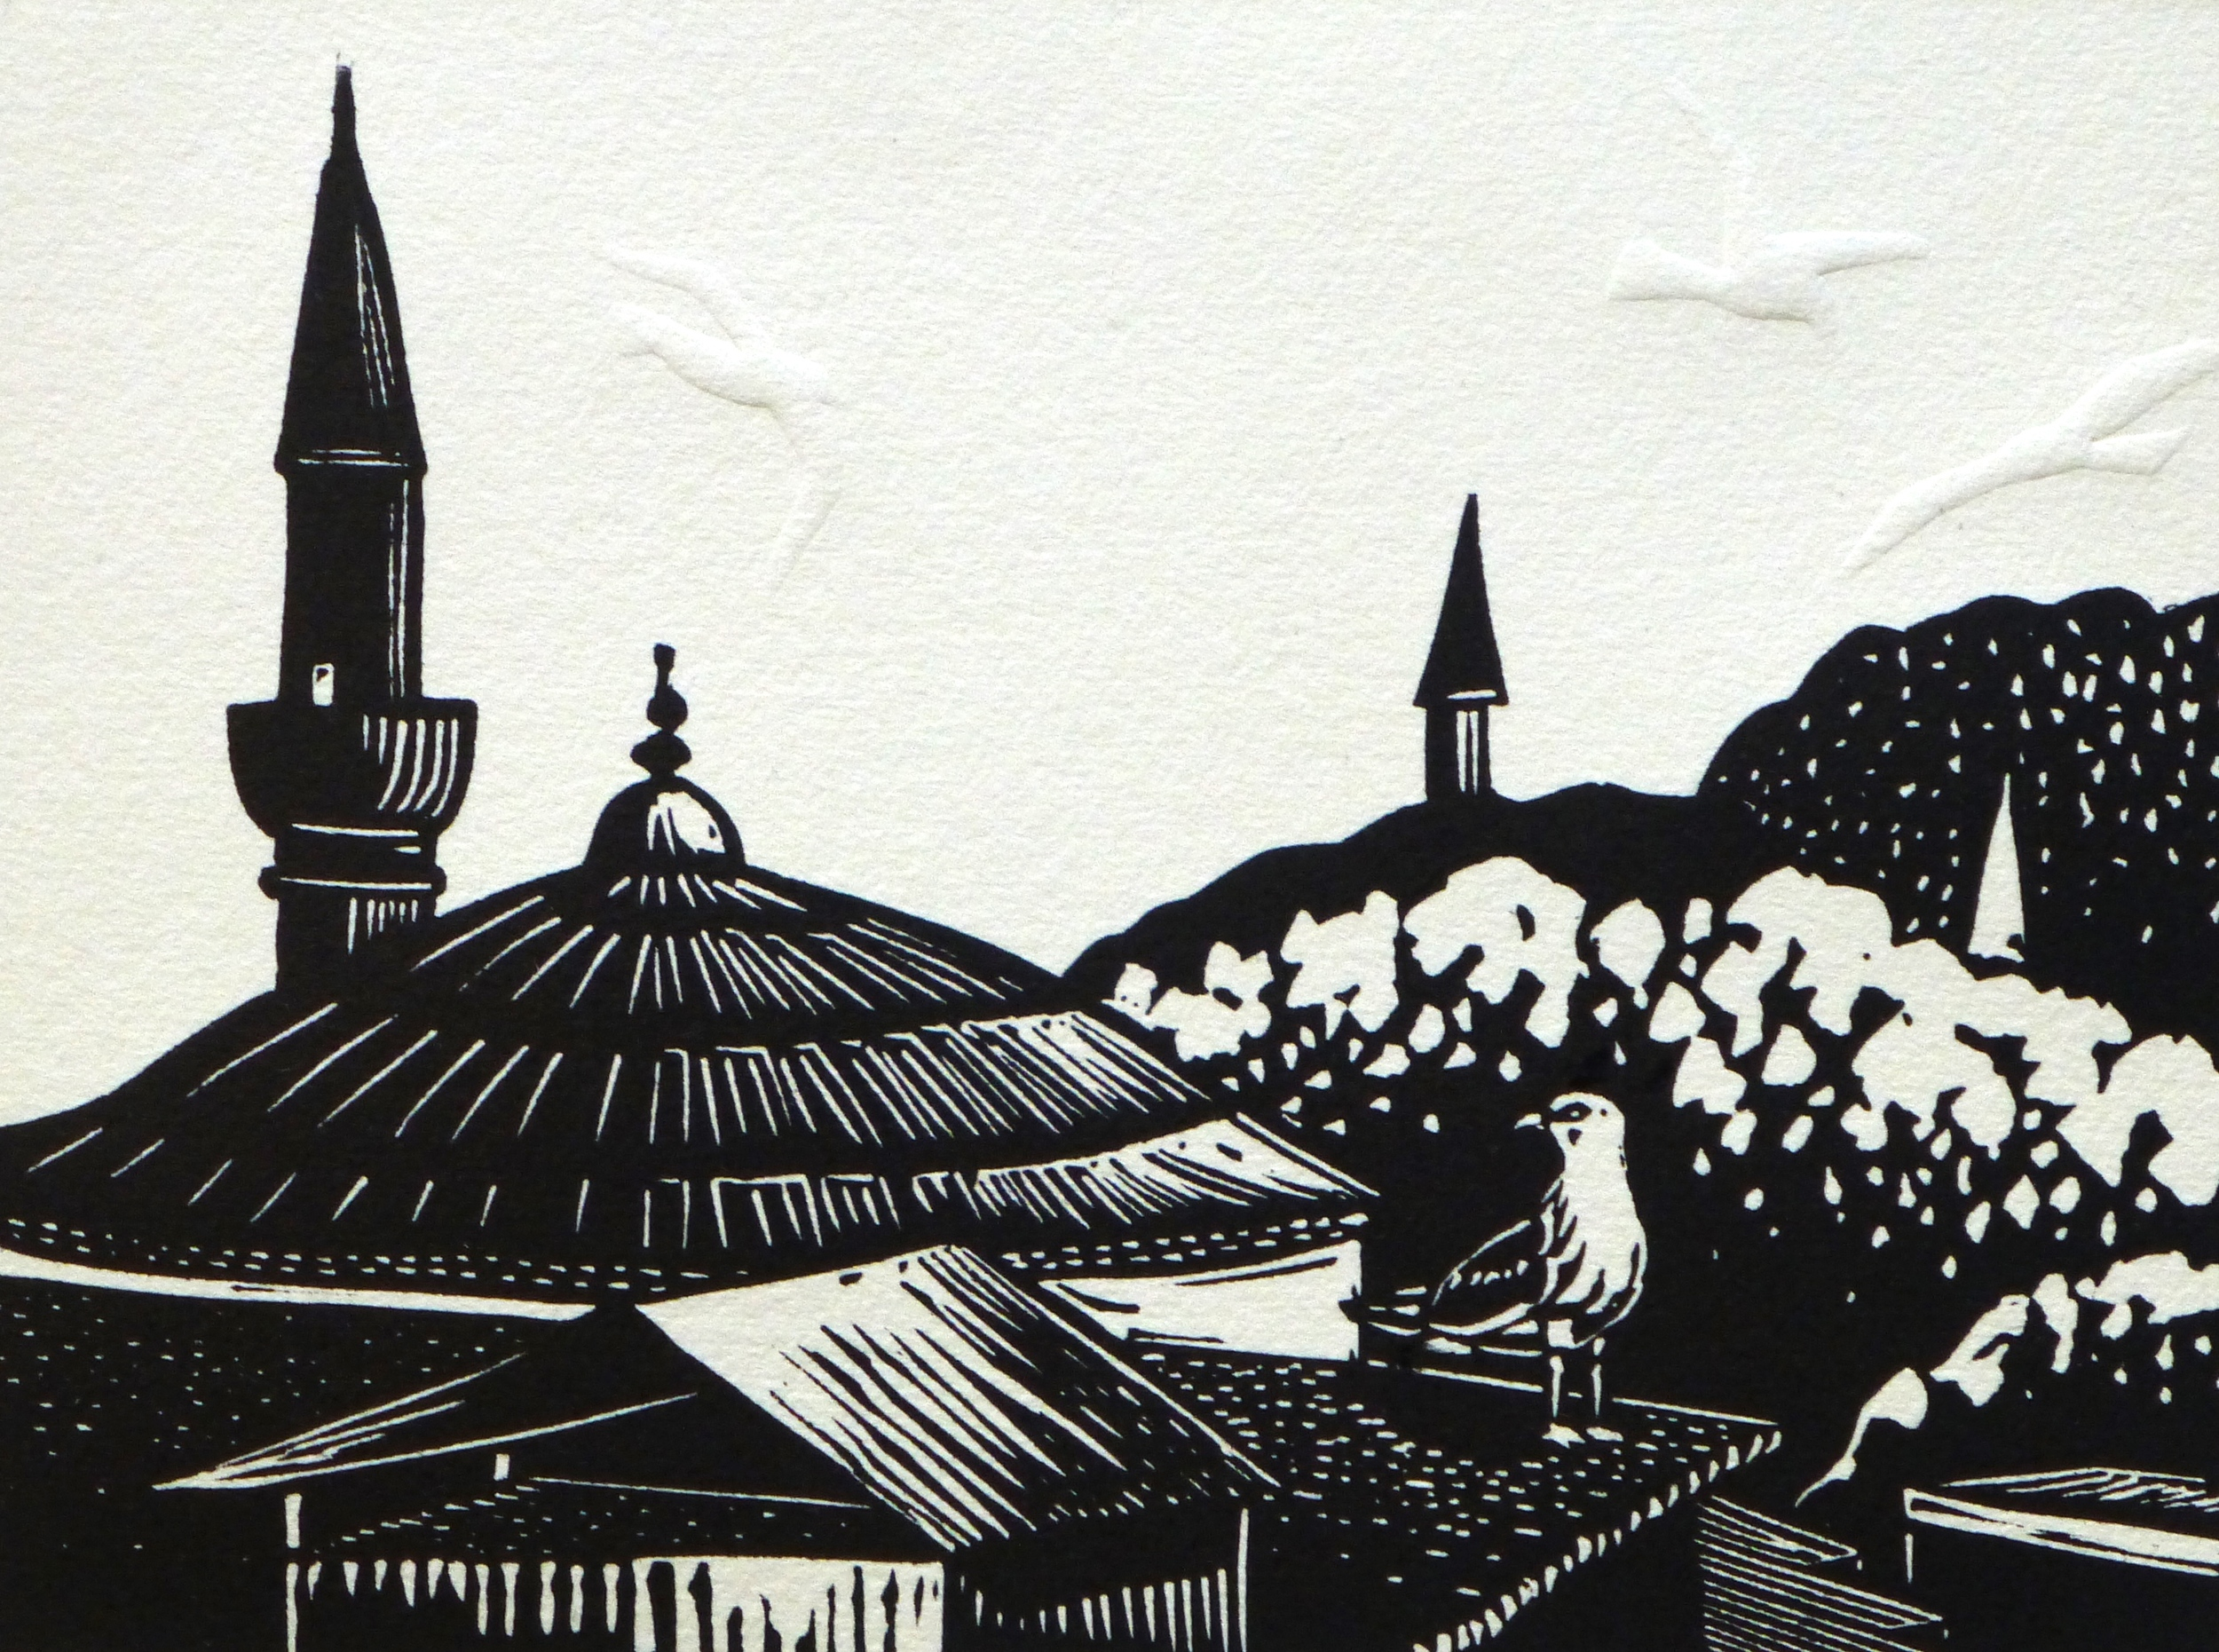 Minarets in Istanbul   Linocut with embossing, 2014  Edition of 8  Image size: 15 cm x 20 cm  Paper size: 30 cm x 34 cm  $100